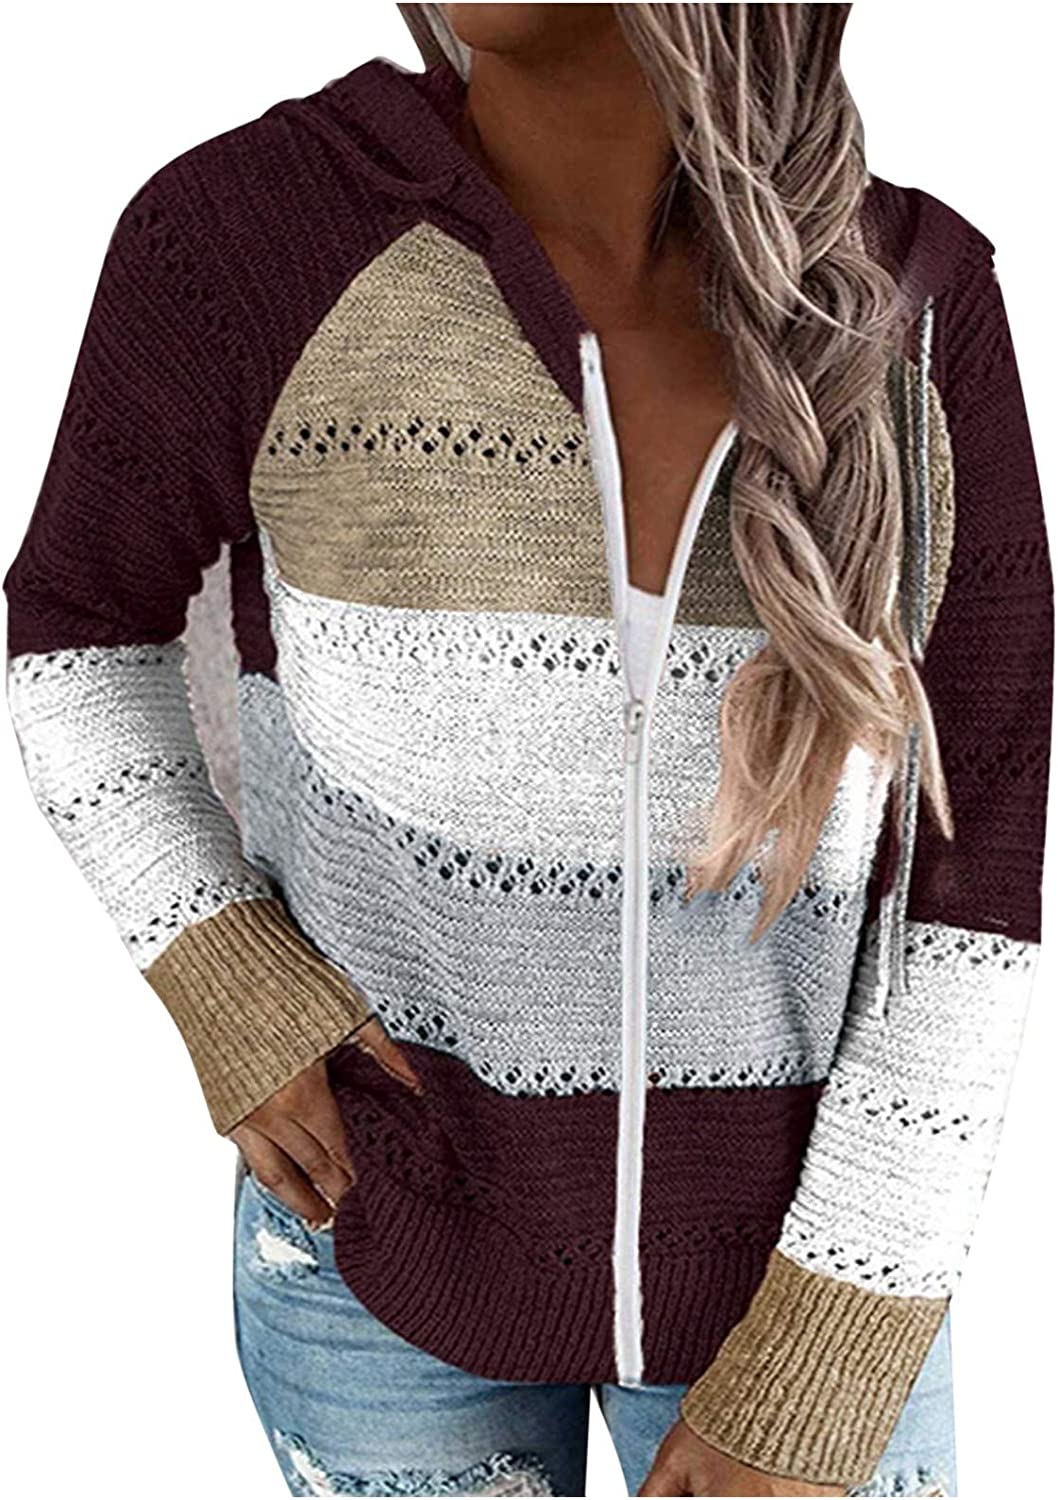 AODONG Sweater for Women Casual Color Block Knitted Cardigan Long Sleeves Sweatshirts Zippered Drawstring Hooded Tops